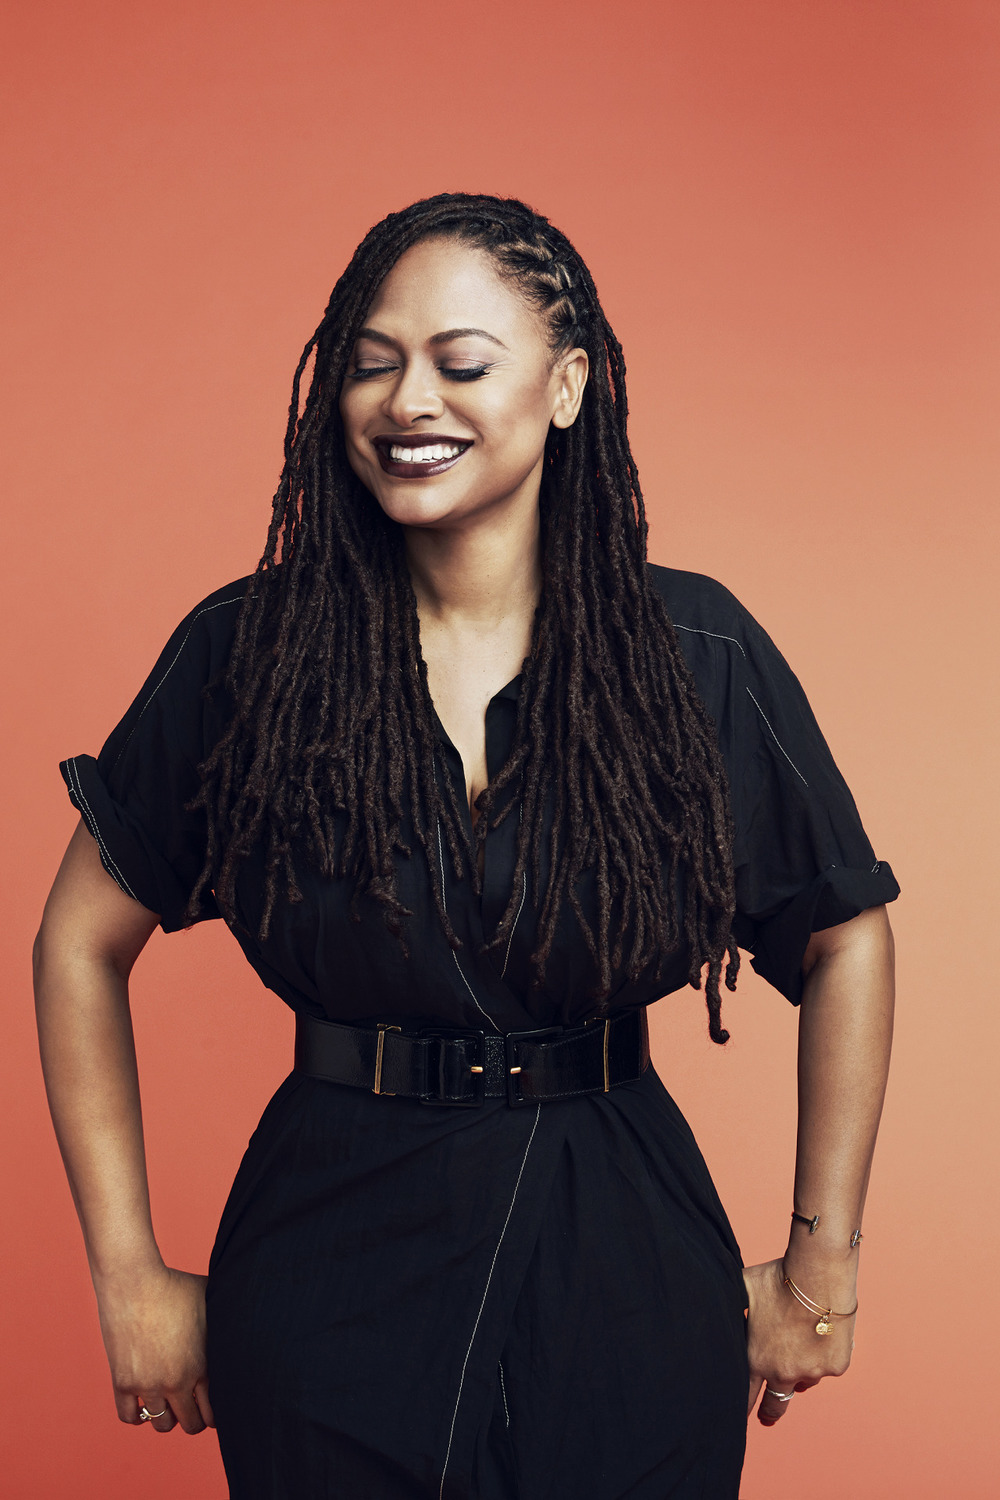 Ava DuVernay wrinkle in time